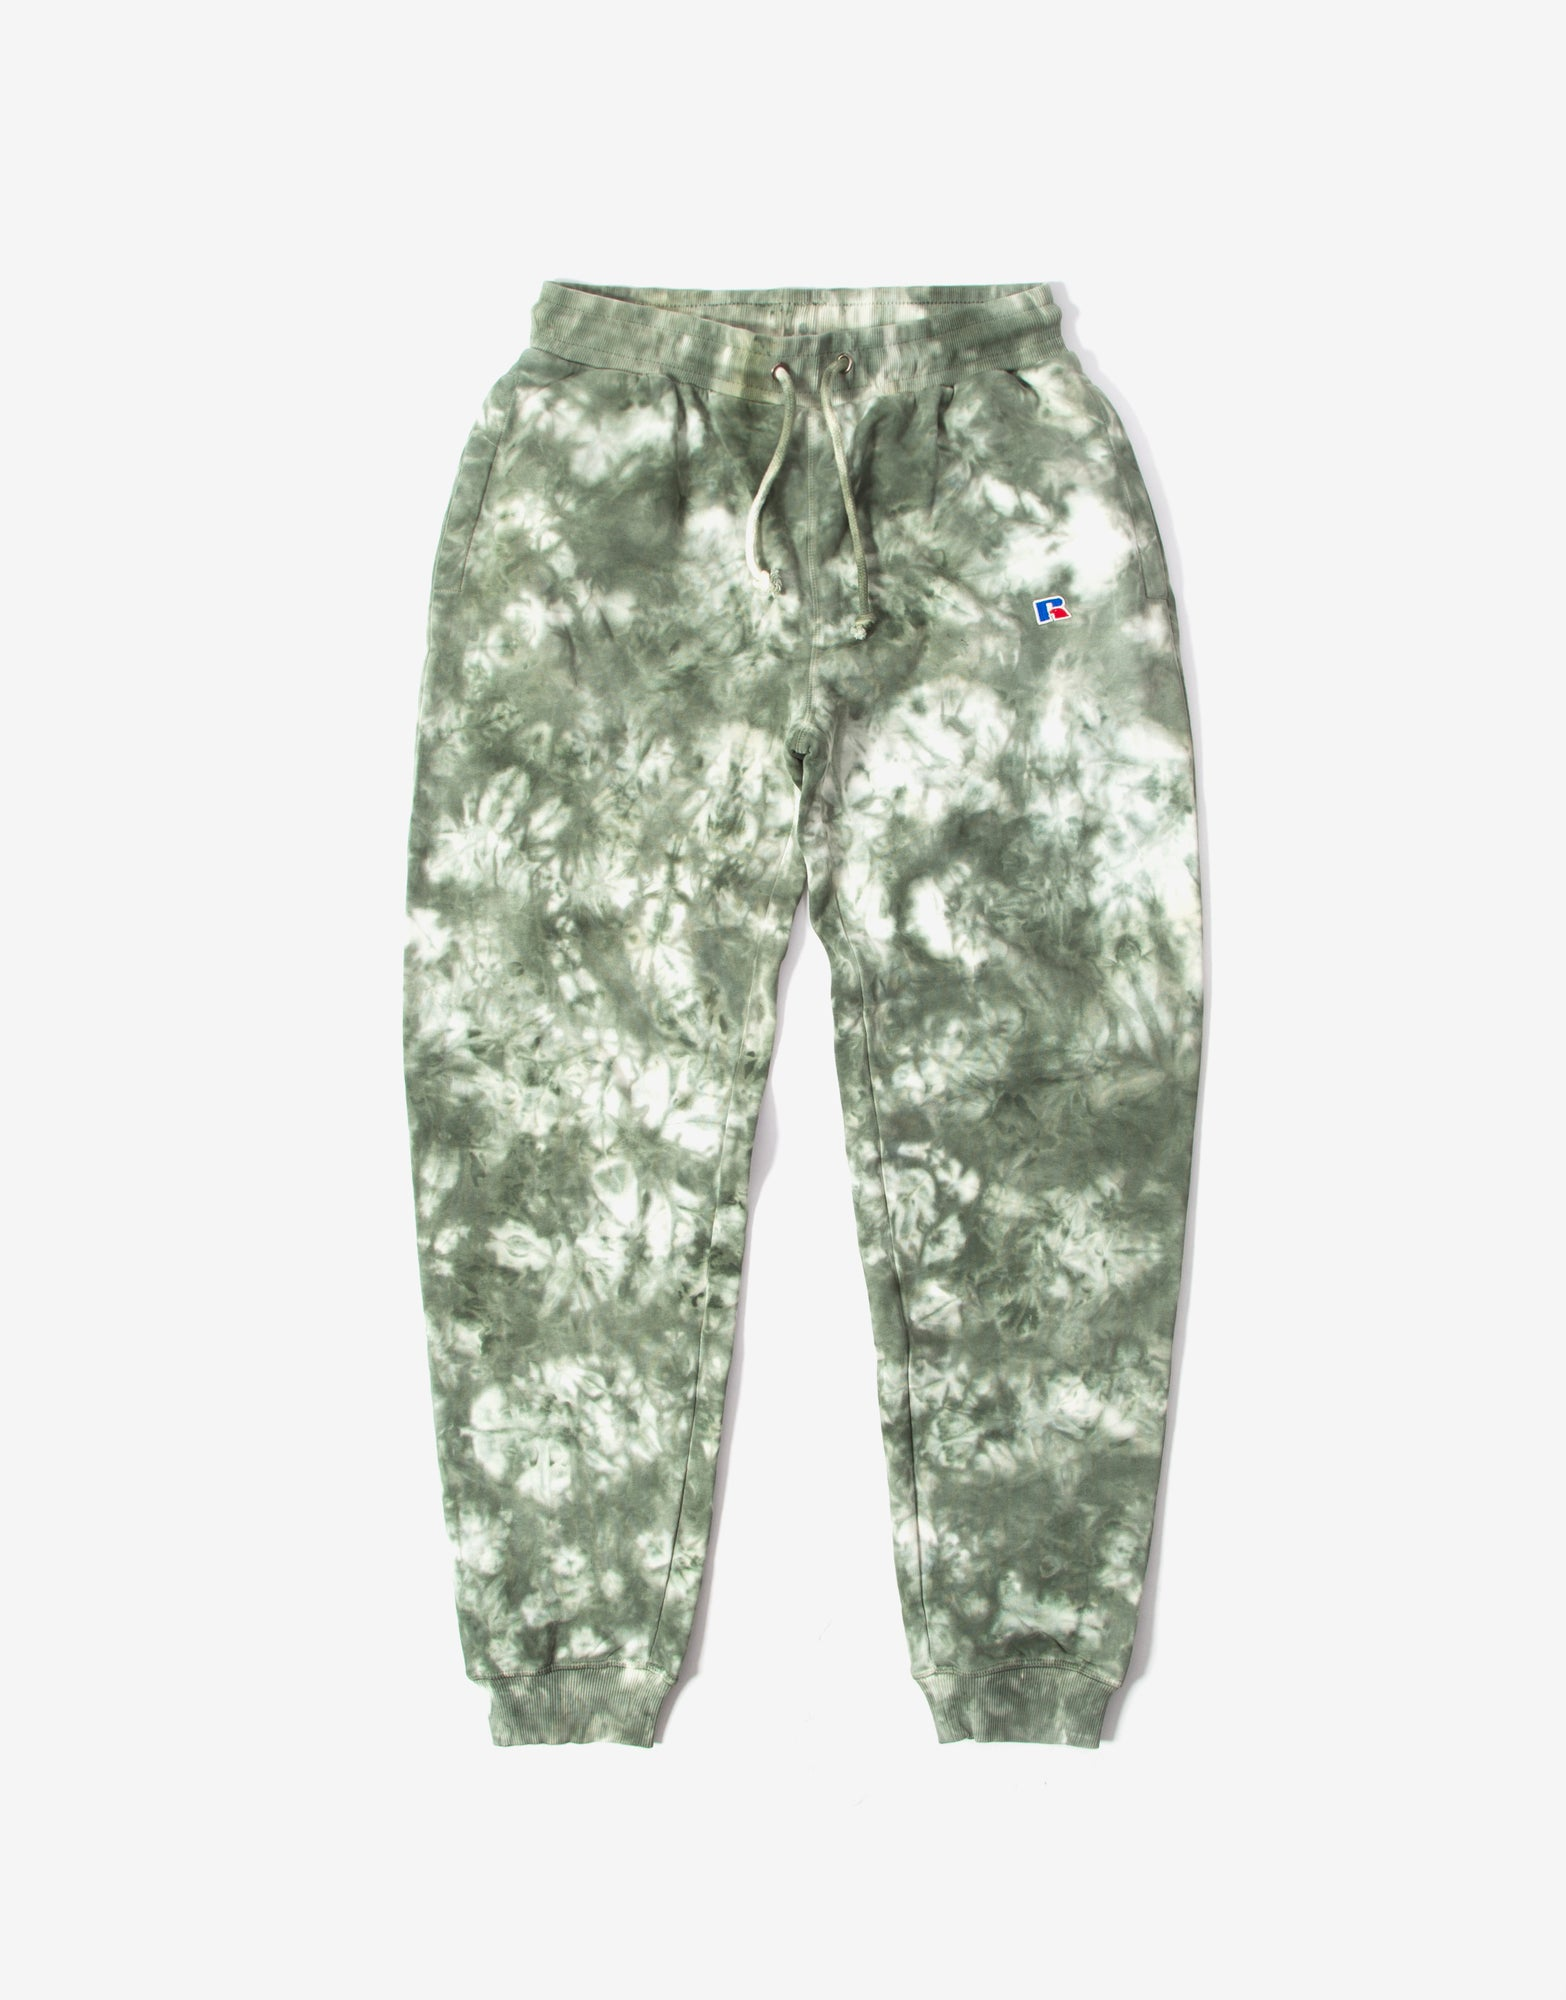 Russell Athletic Arlyn Sweatpants - Four Leaf Clover